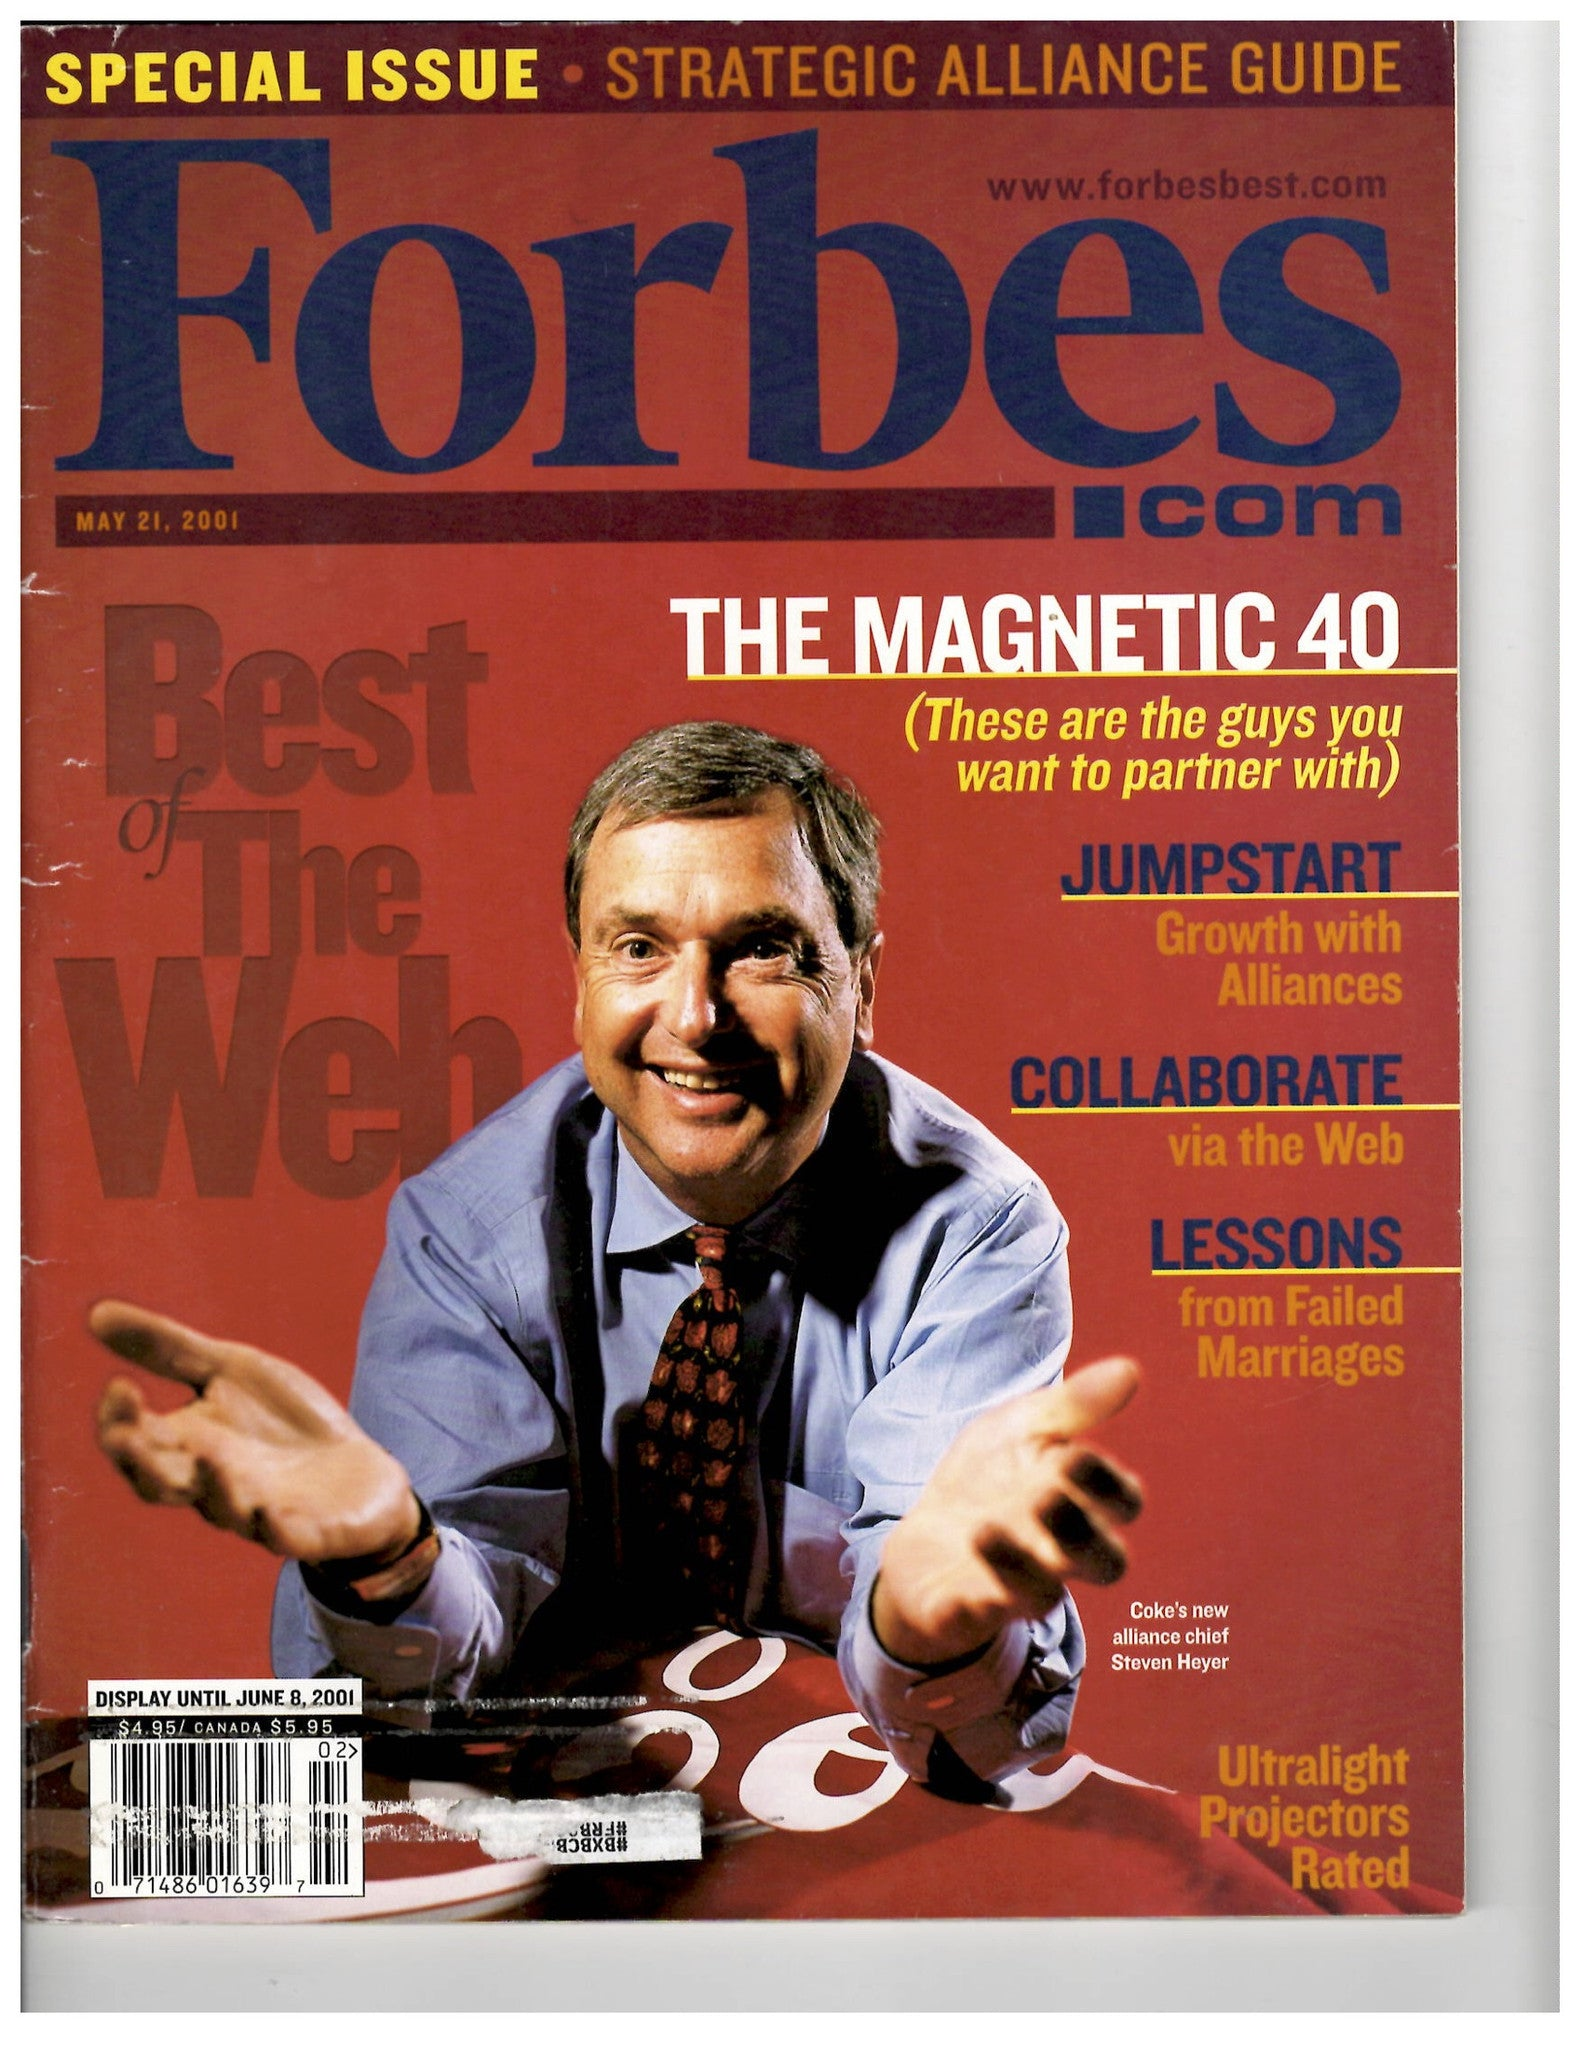 05 21 2001 Forbes Best of the Web